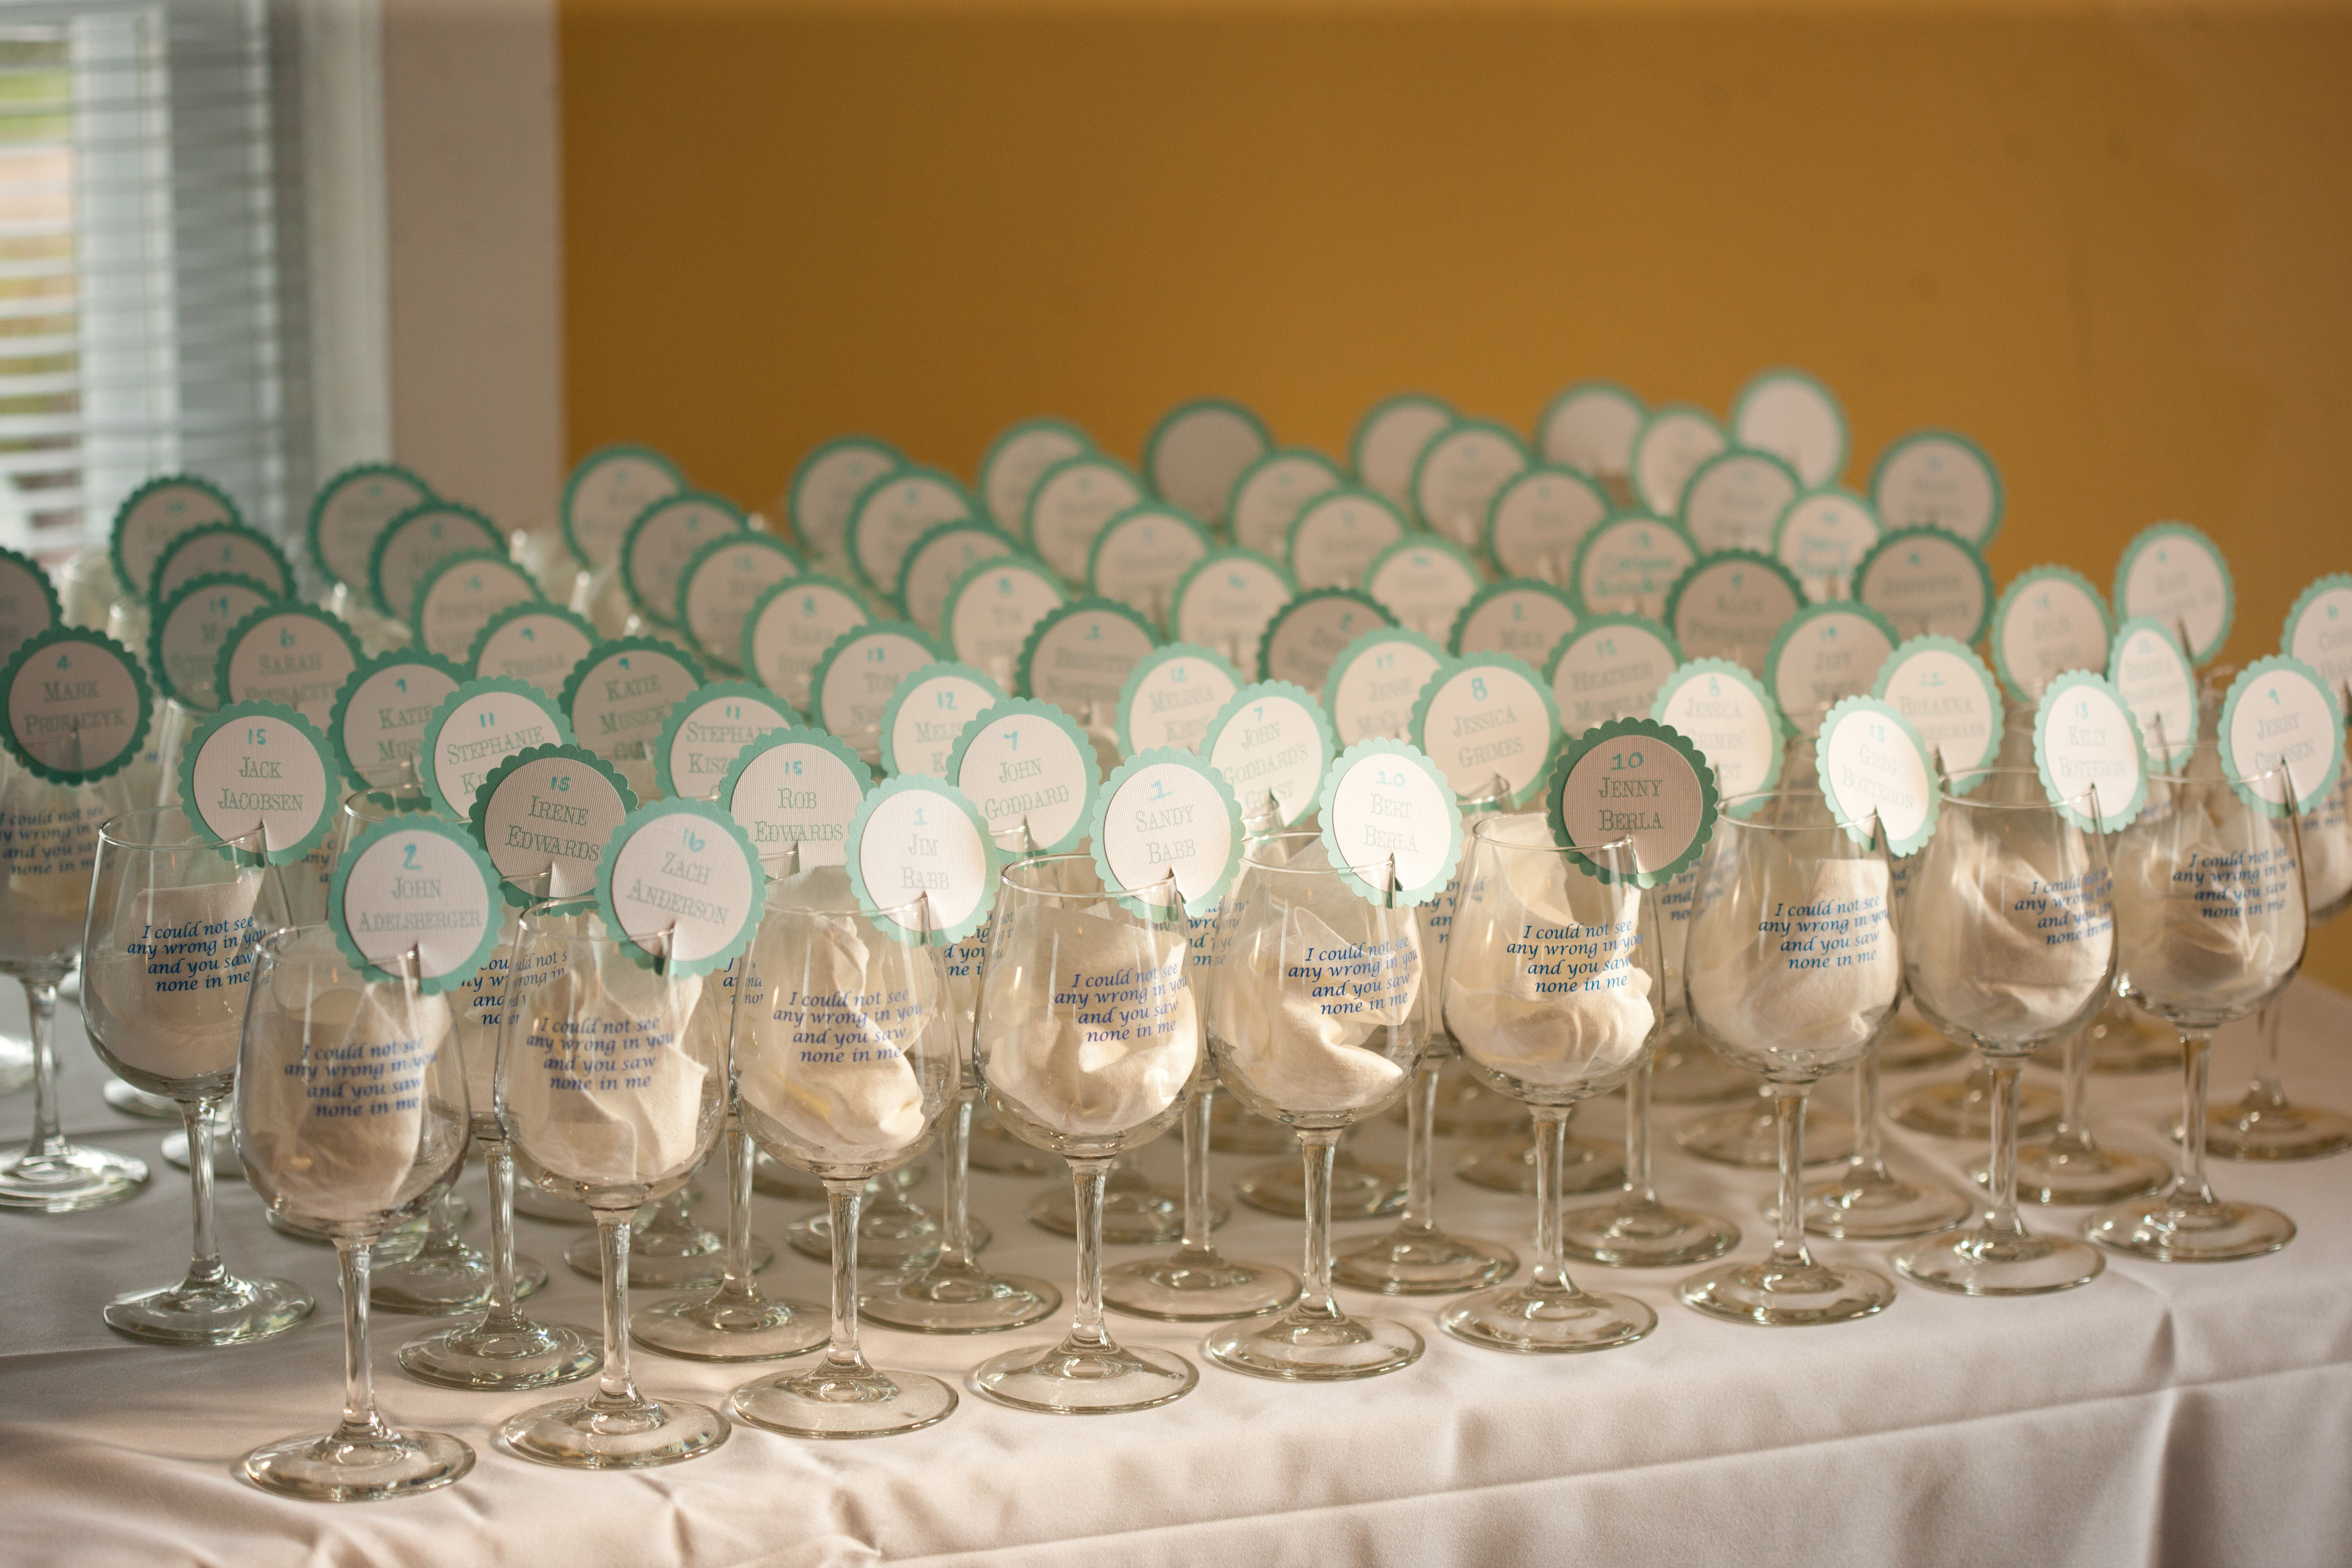 Wedding Gifts For Guests Pinterest : Wedding favors: wine glasses with lyric printed on them and place card ...